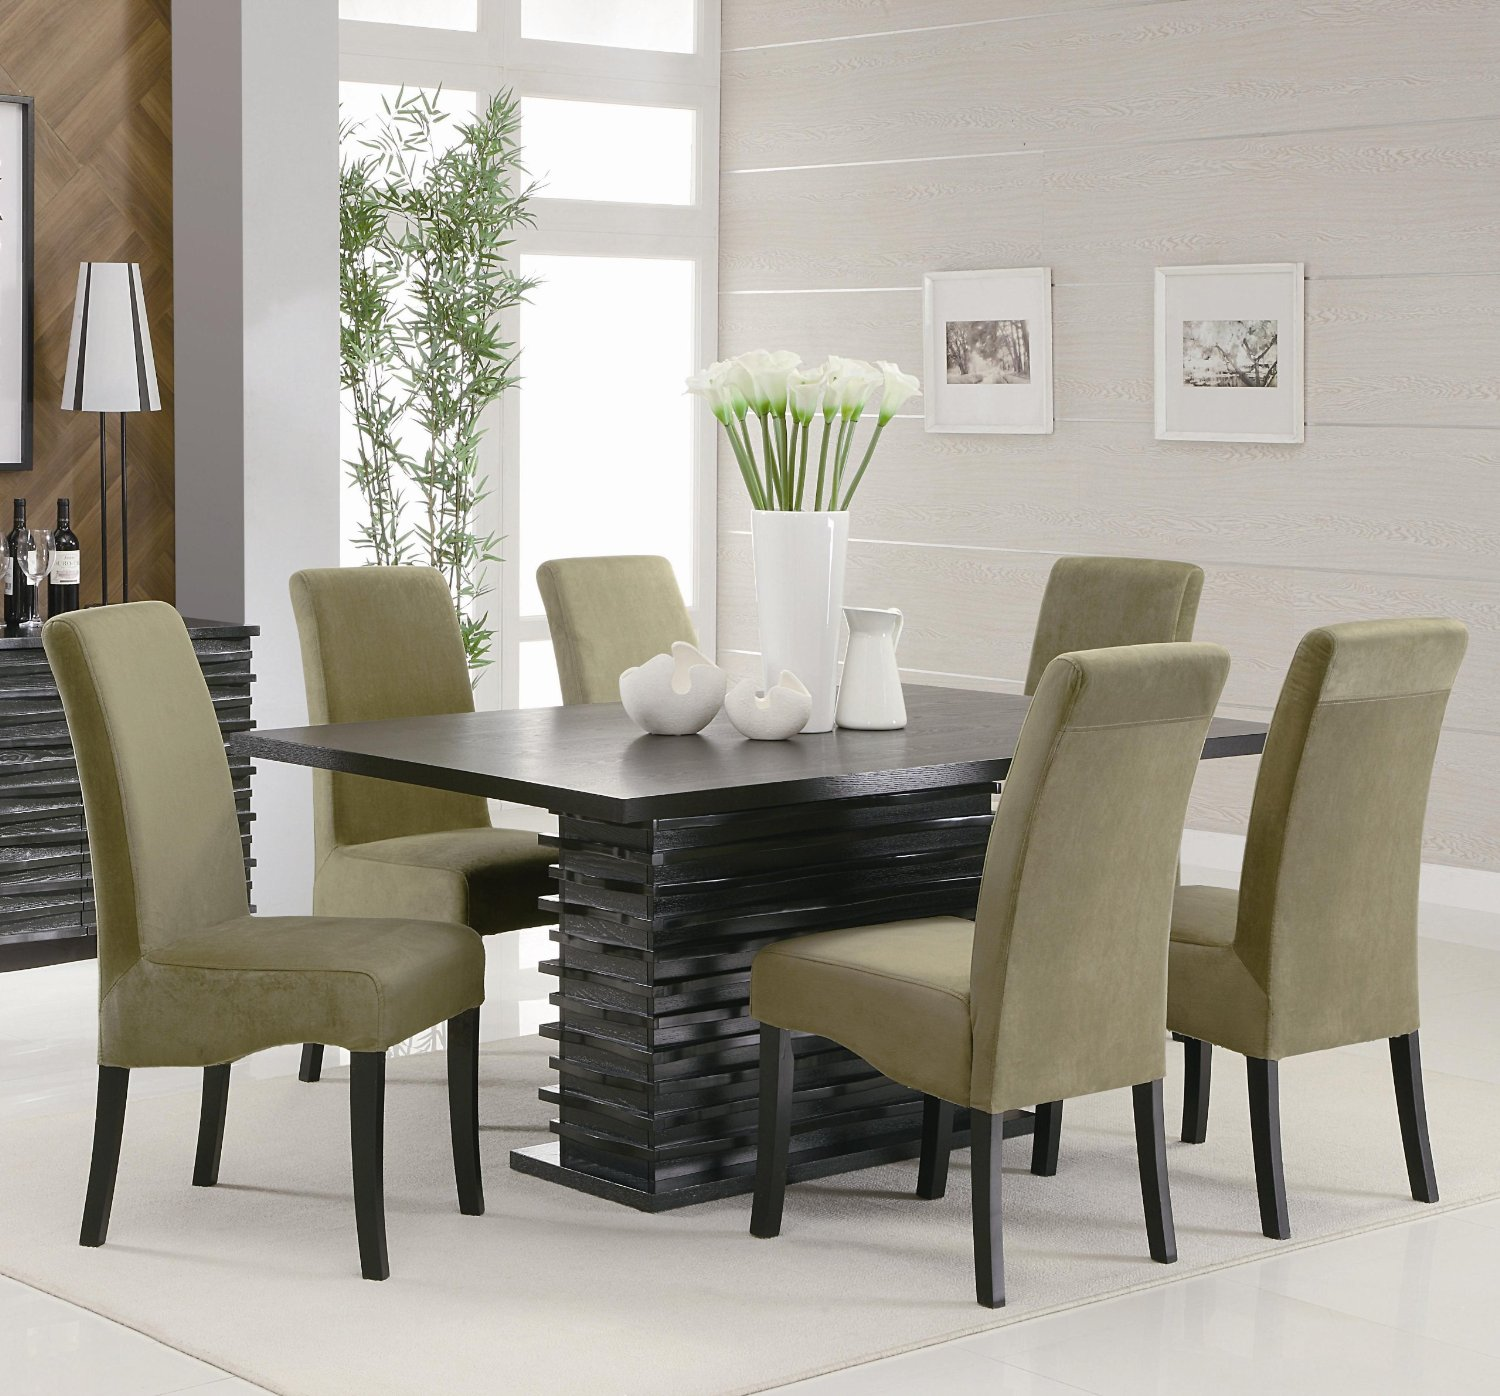 Round Dining Table. Modern Dining Room Sets